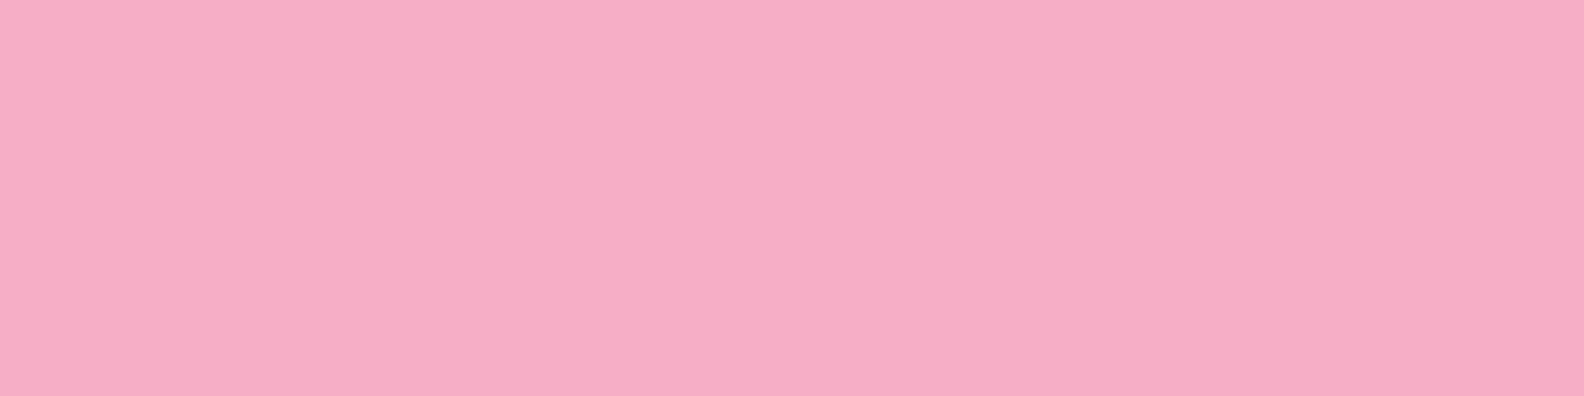 1584x396 Nadeshiko Pink Solid Color Background